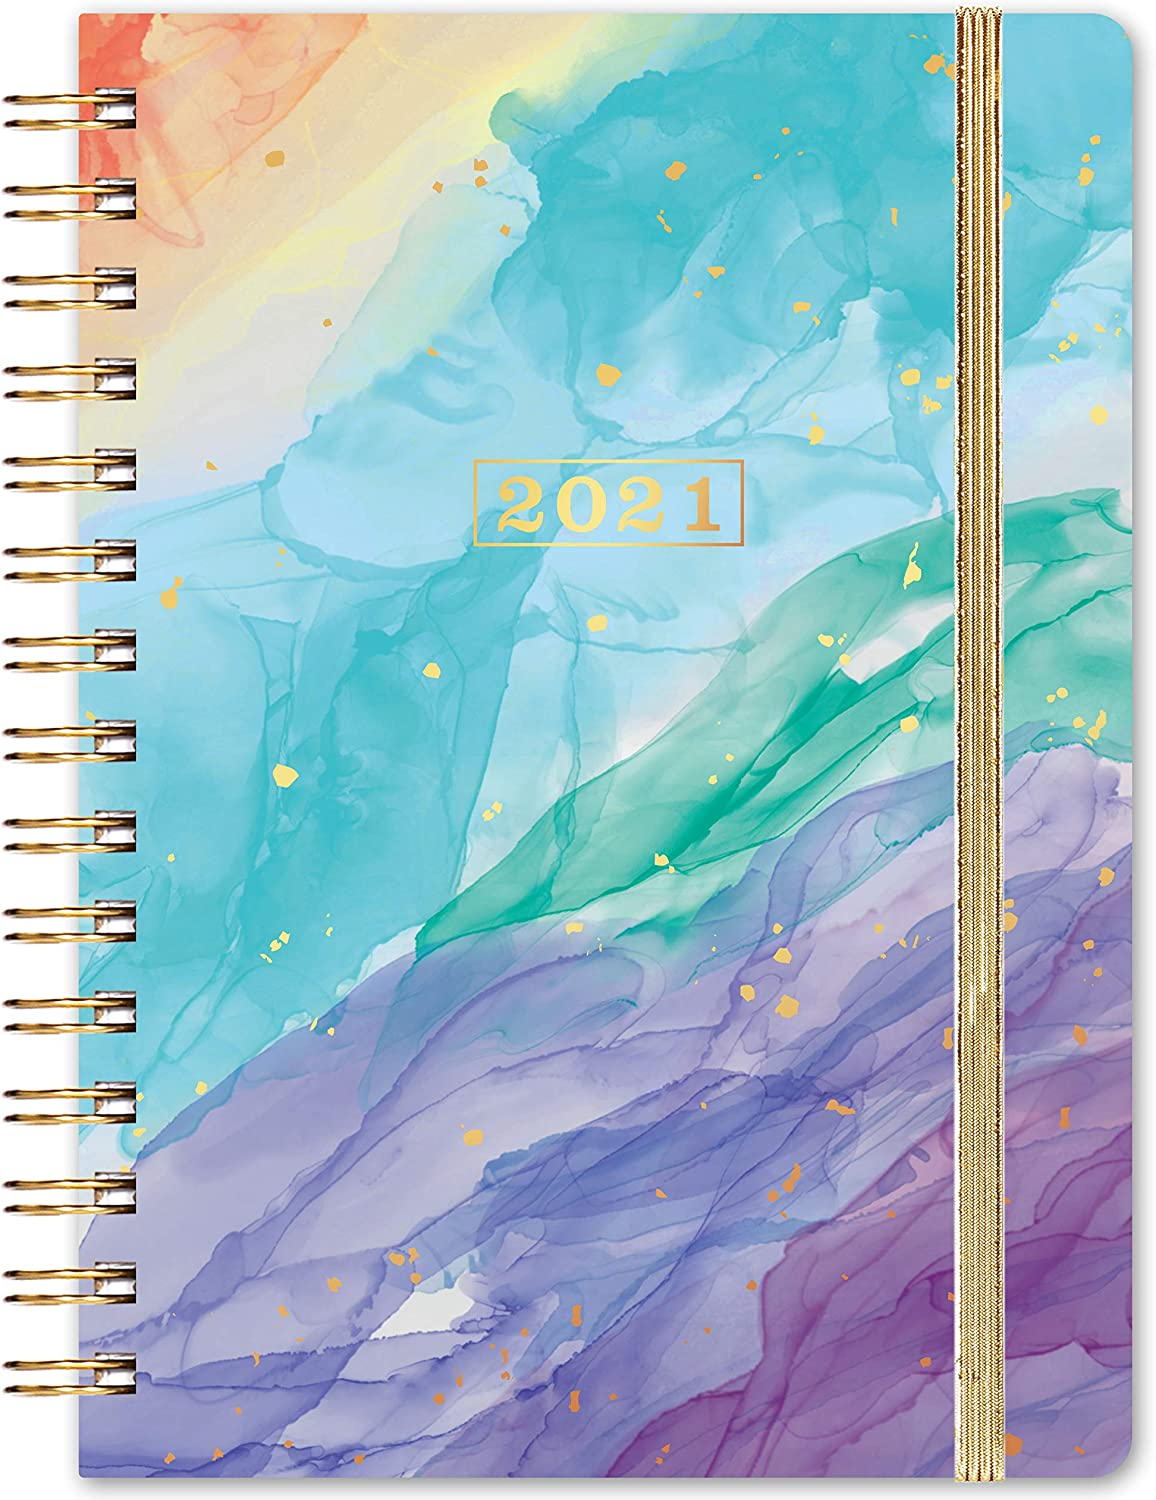 """2021 Planner - Weekly & Monthly Planner with Tabs, 6.3"""" x 8.4"""", Jan. - Dec. 2021, Flexible Cover Planner with Elastic Closure + Thick Paper + Coated Tabs + Inner Pocket"""